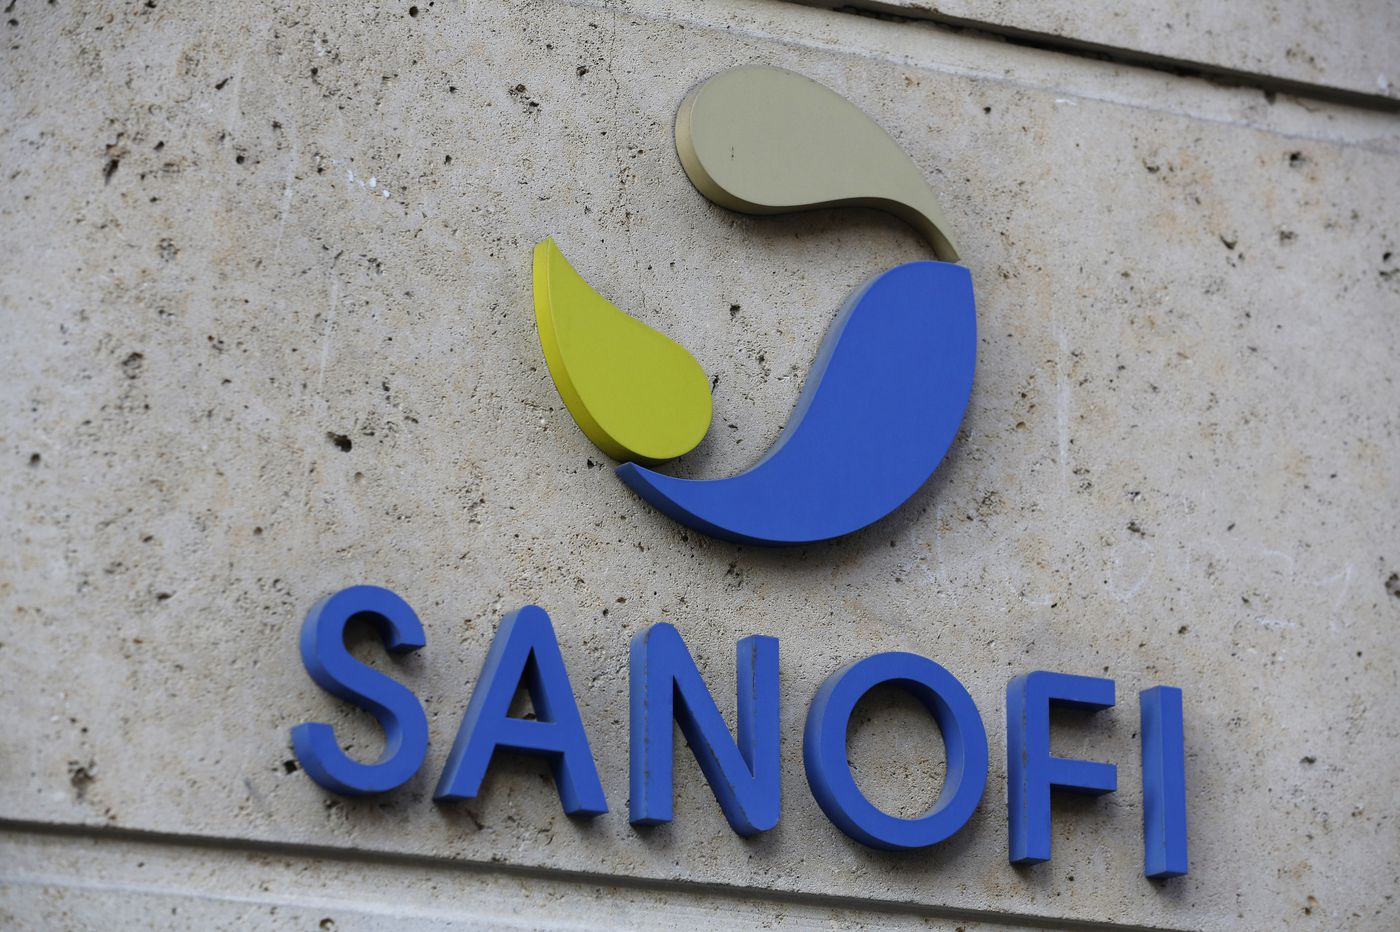 GlaxoSmithKline and Sanofi say their COVID-19 vaccine won't be ready until late 2021